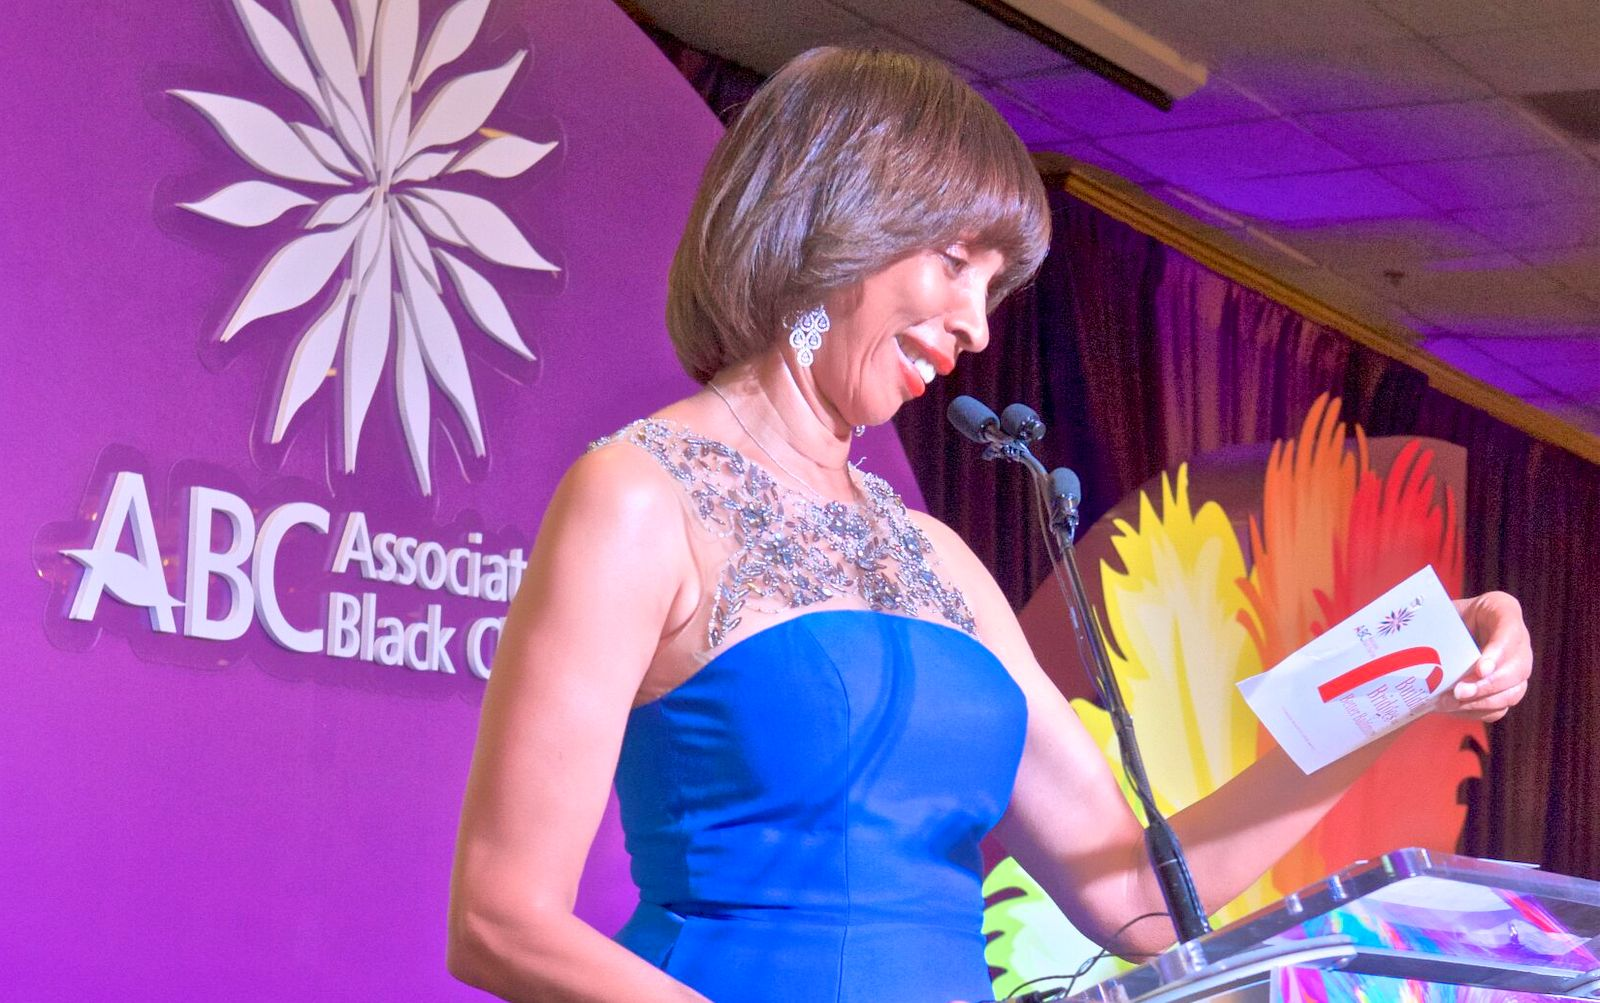 Then-Mayor Catherine Pugh speaks at ABC's annual gala in 2017. (Brew file photo)